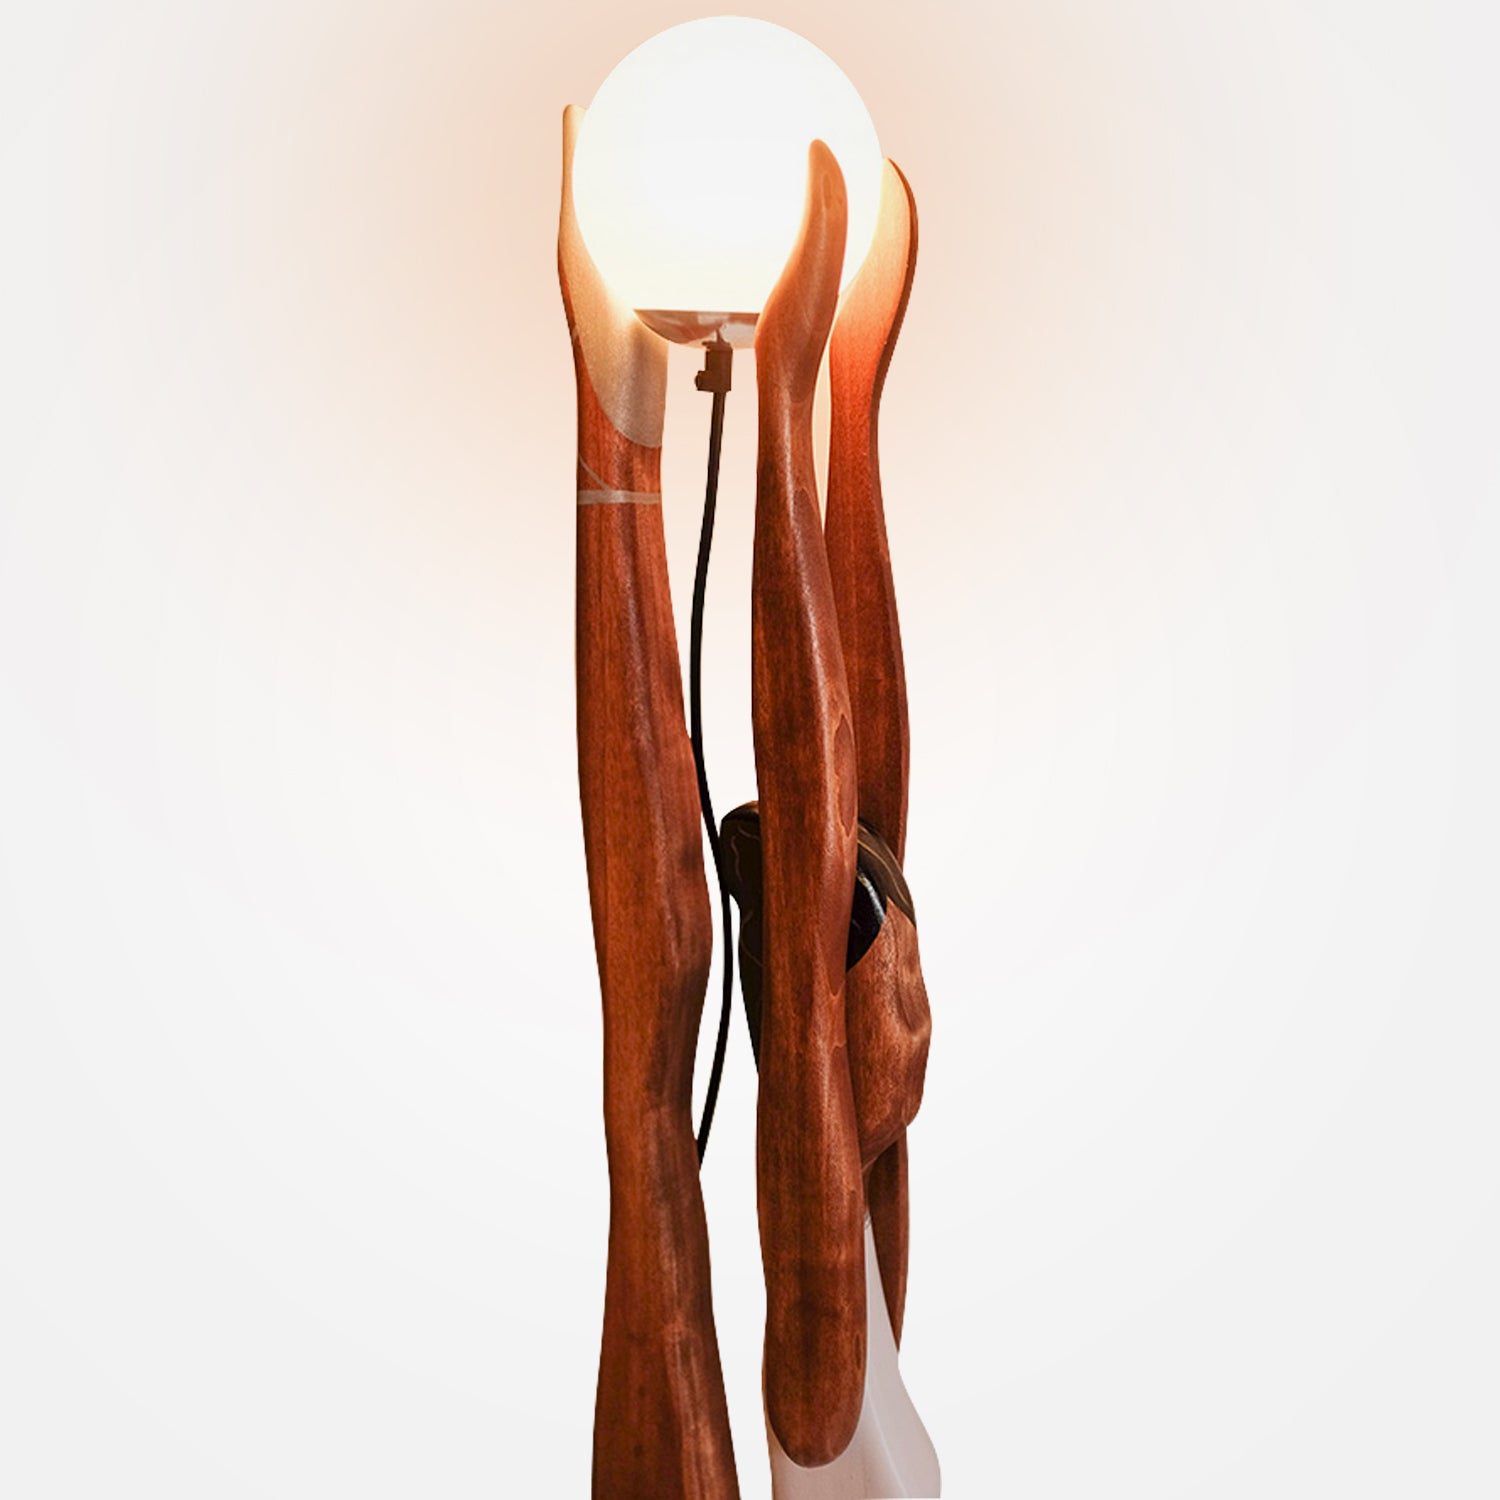 Stylish Ballerina Floor Lamp - Black Lady